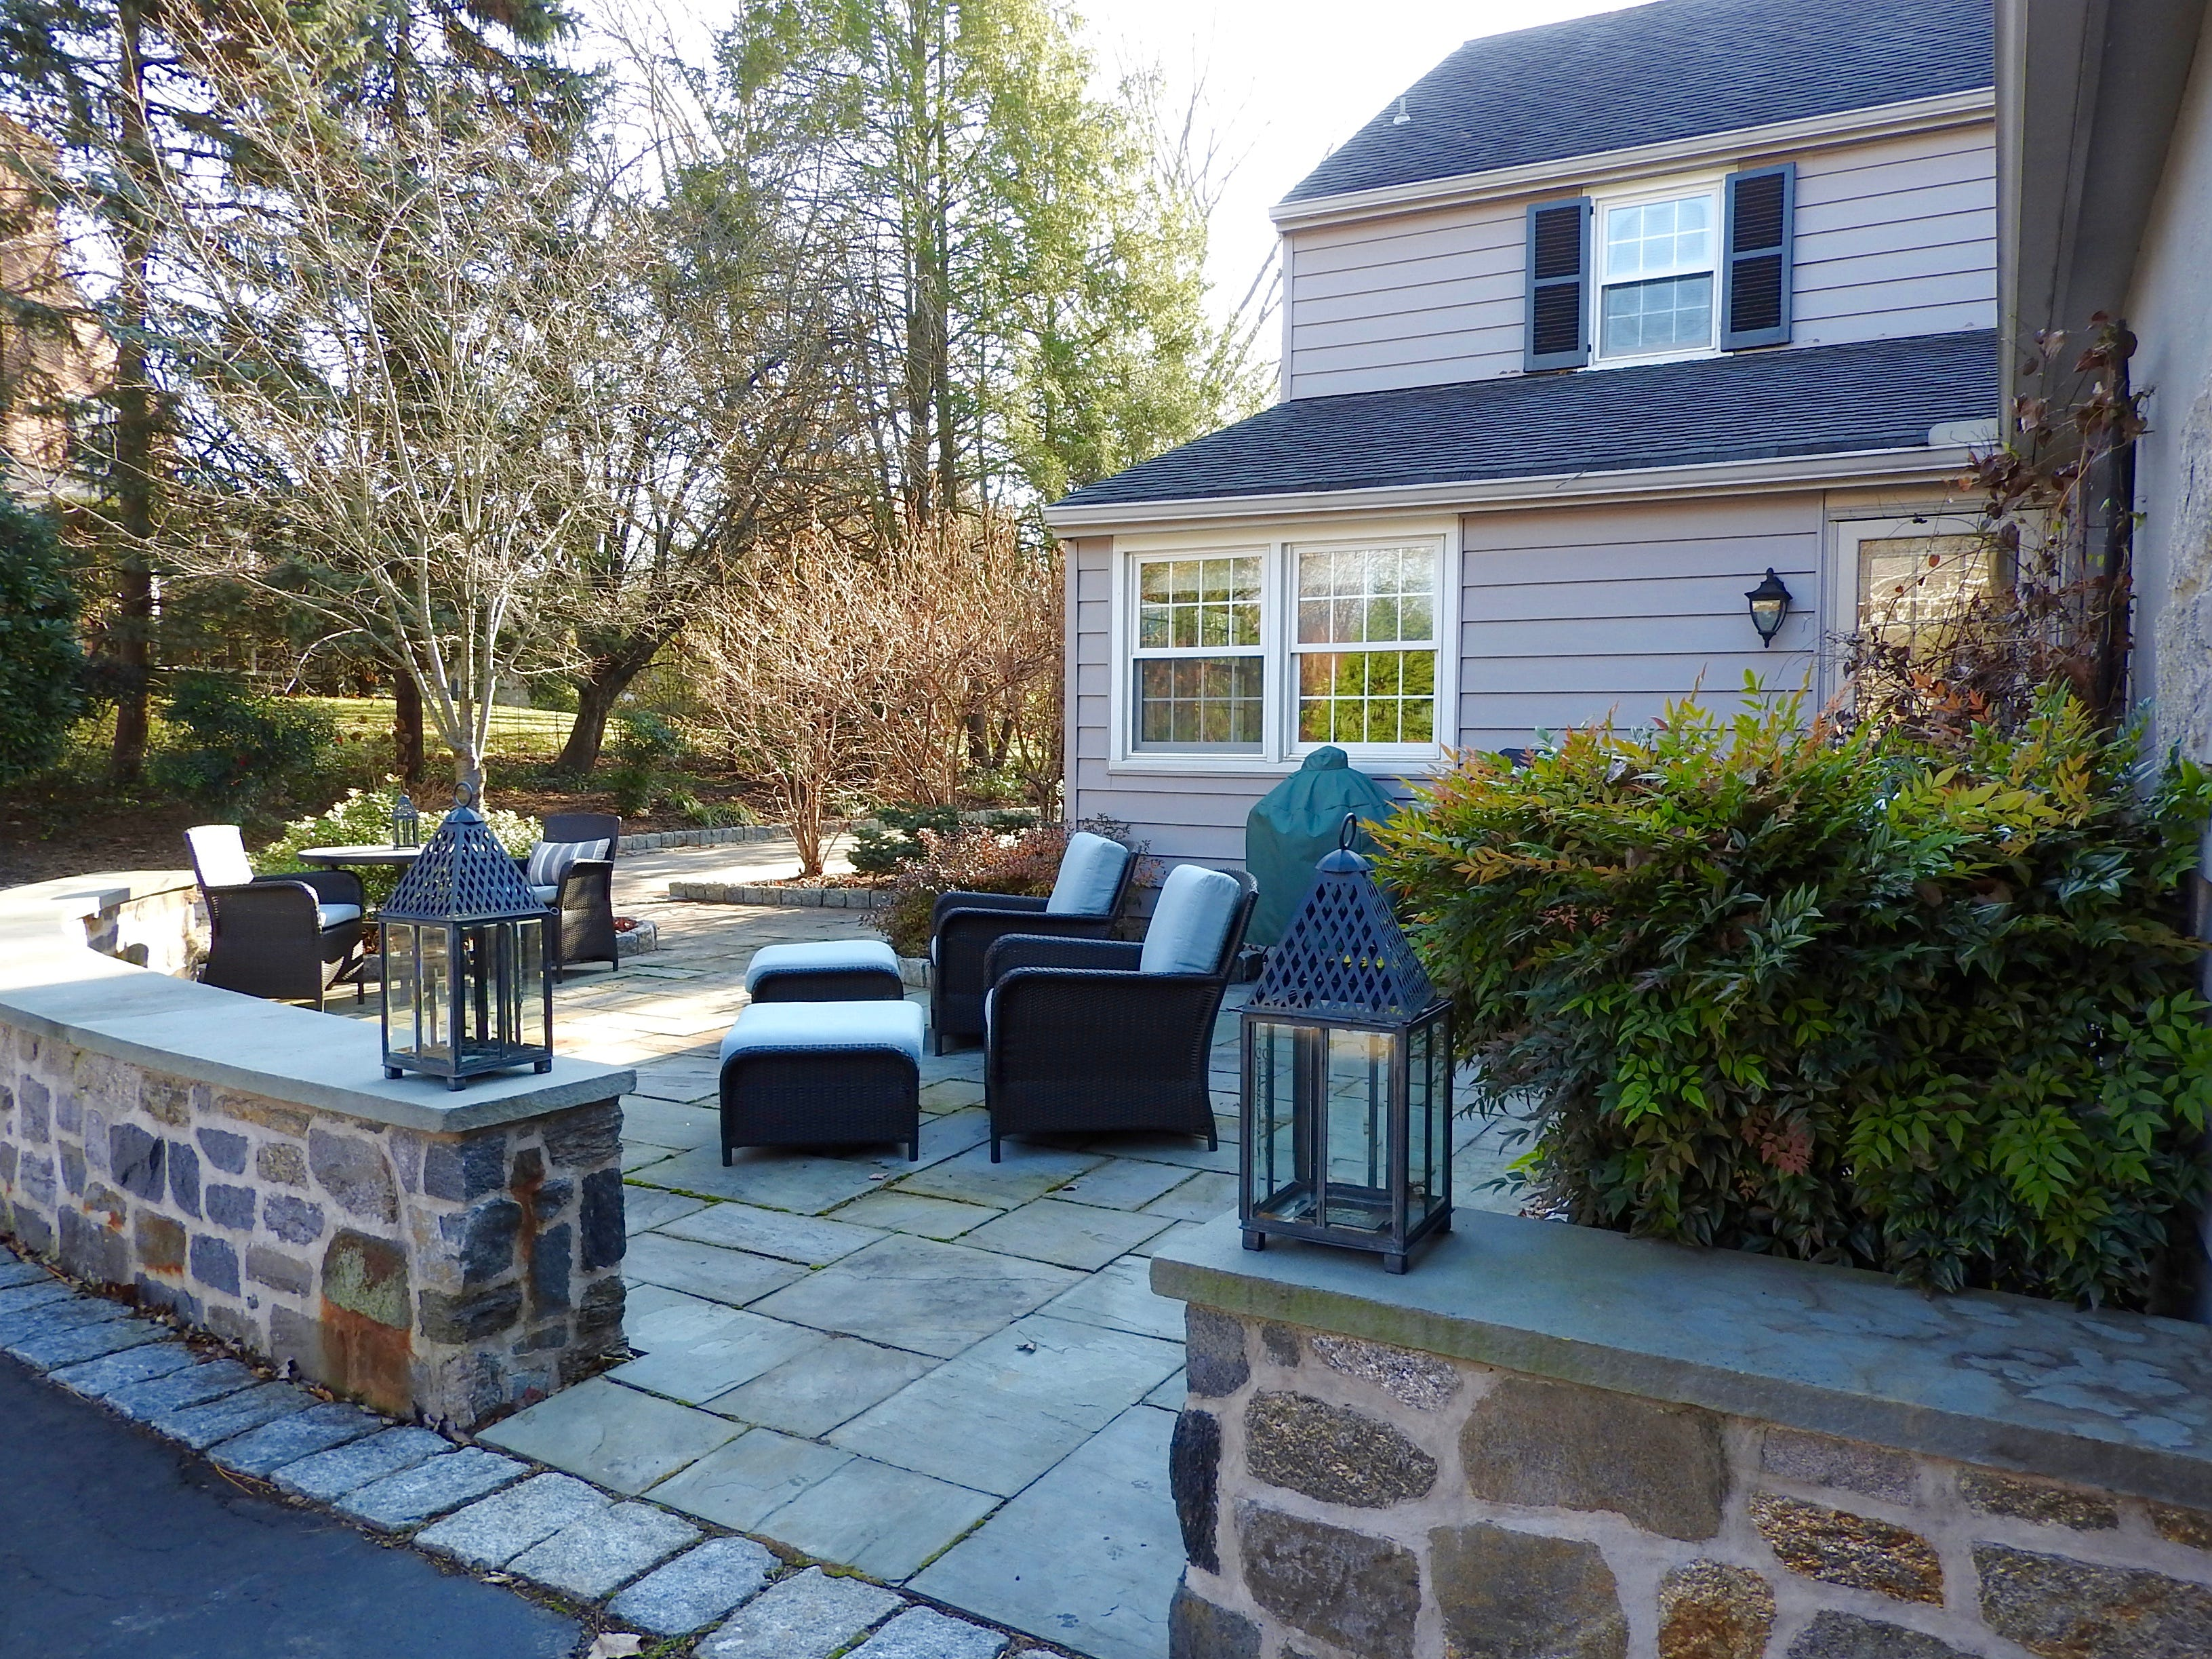 The flagstone patio at 103 Edgewood Road in Alapocas offers a gracious place to entertain guests or end the day.